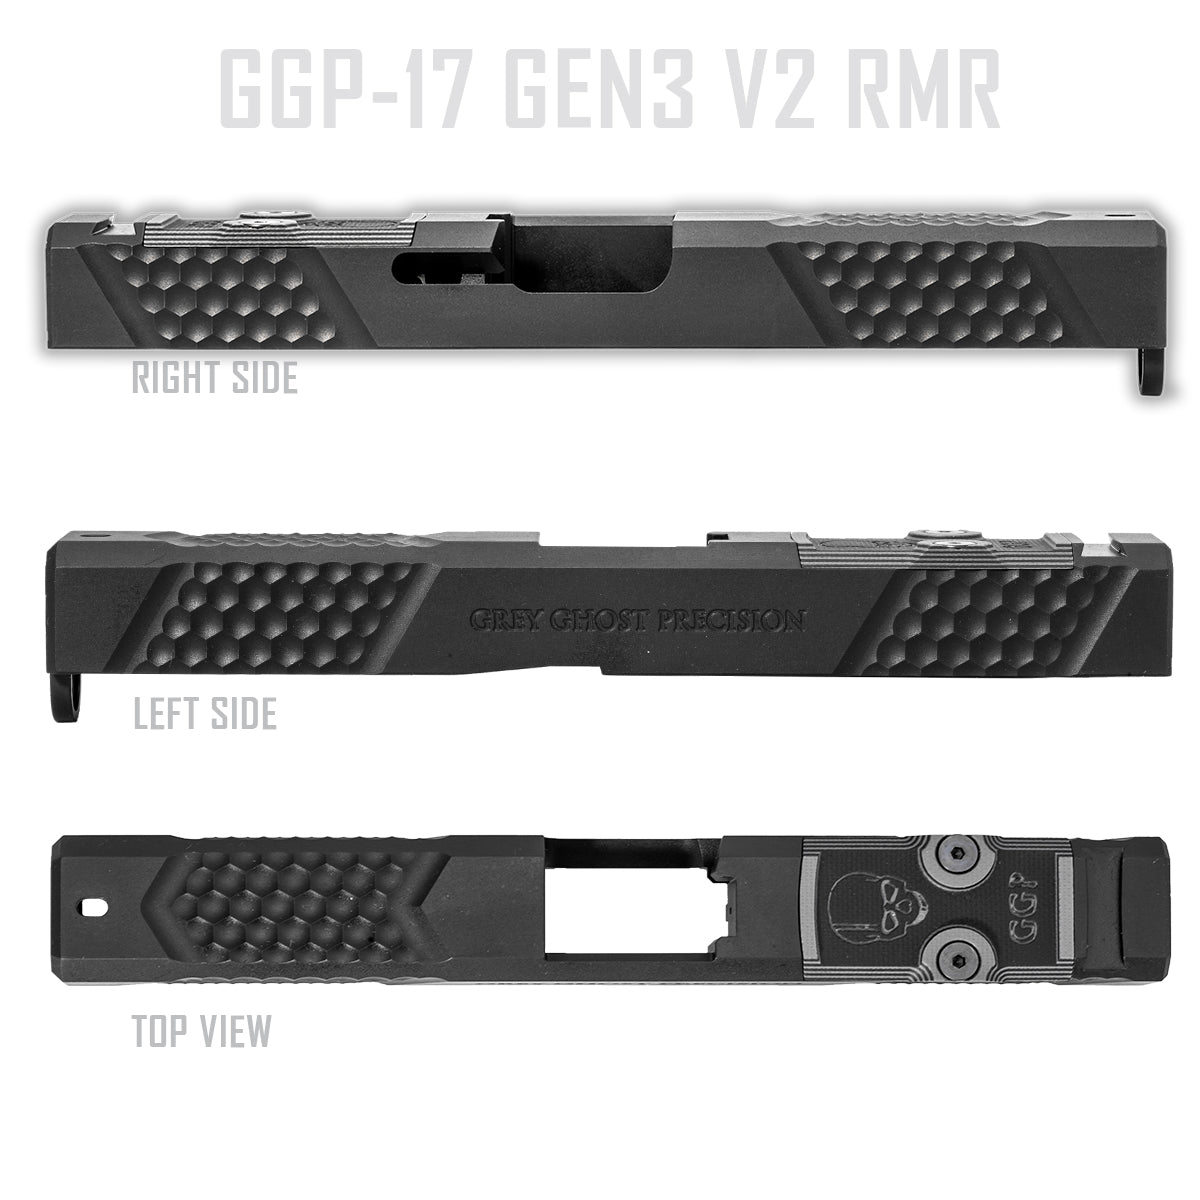 GGP Glock® 17 Gen 3 Stripped Slide – Grey Ghost Precision